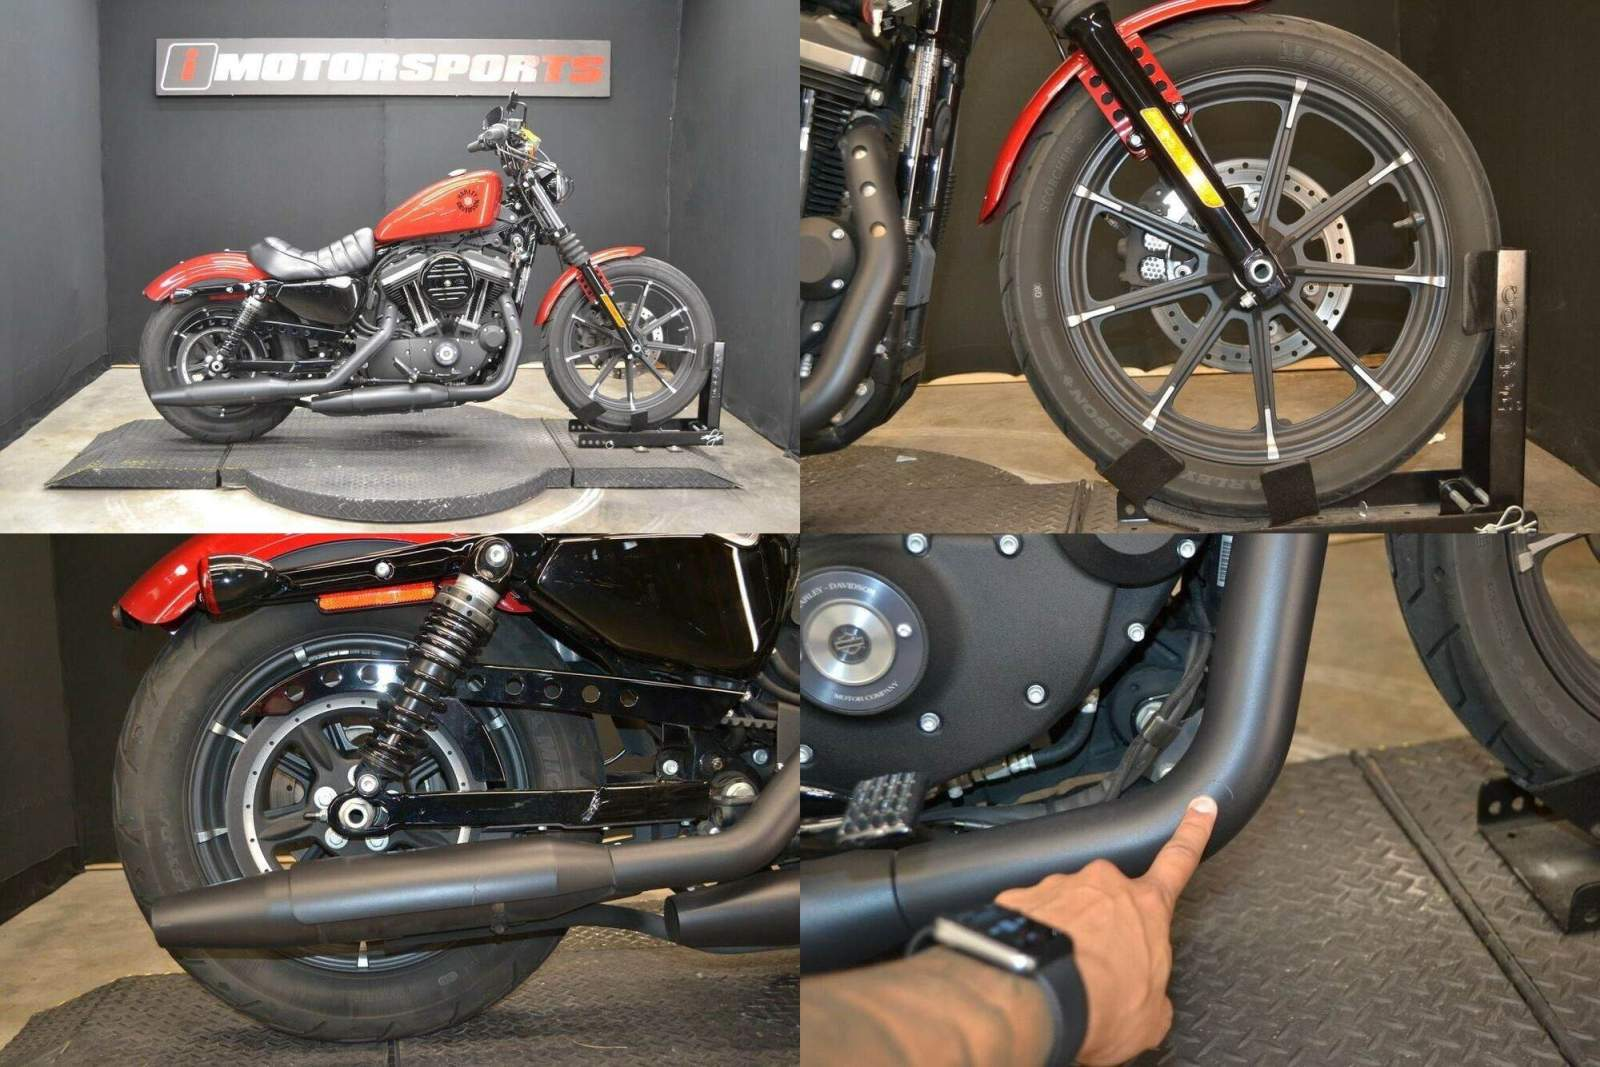 2019 Harley-Davidson XL 883N - Sportster Iron 883 Red used for sale